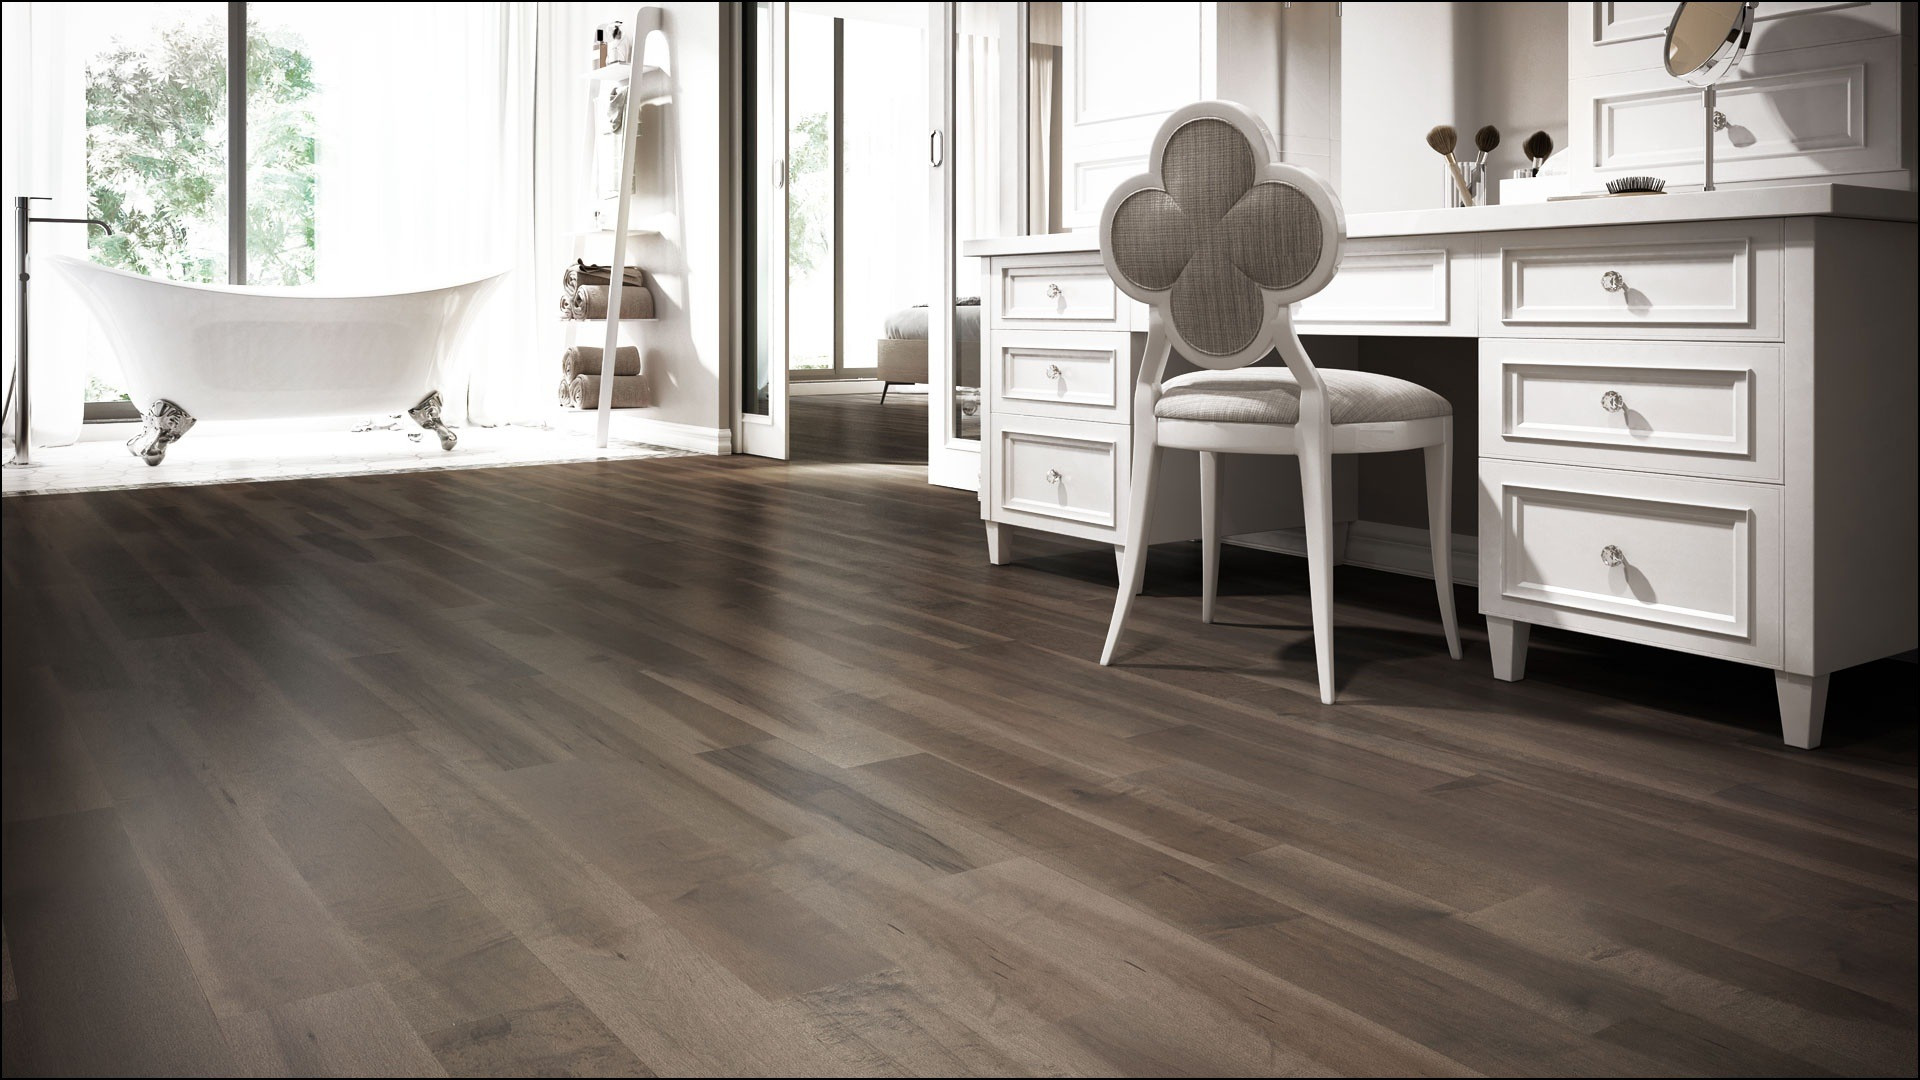 kahrs hardwood flooring reviews of hardwood flooring suppliers france flooring ideas pertaining to hardwood flooring pictures in homes images black and white laminate flooring beautiful splendid exterior of hardwood